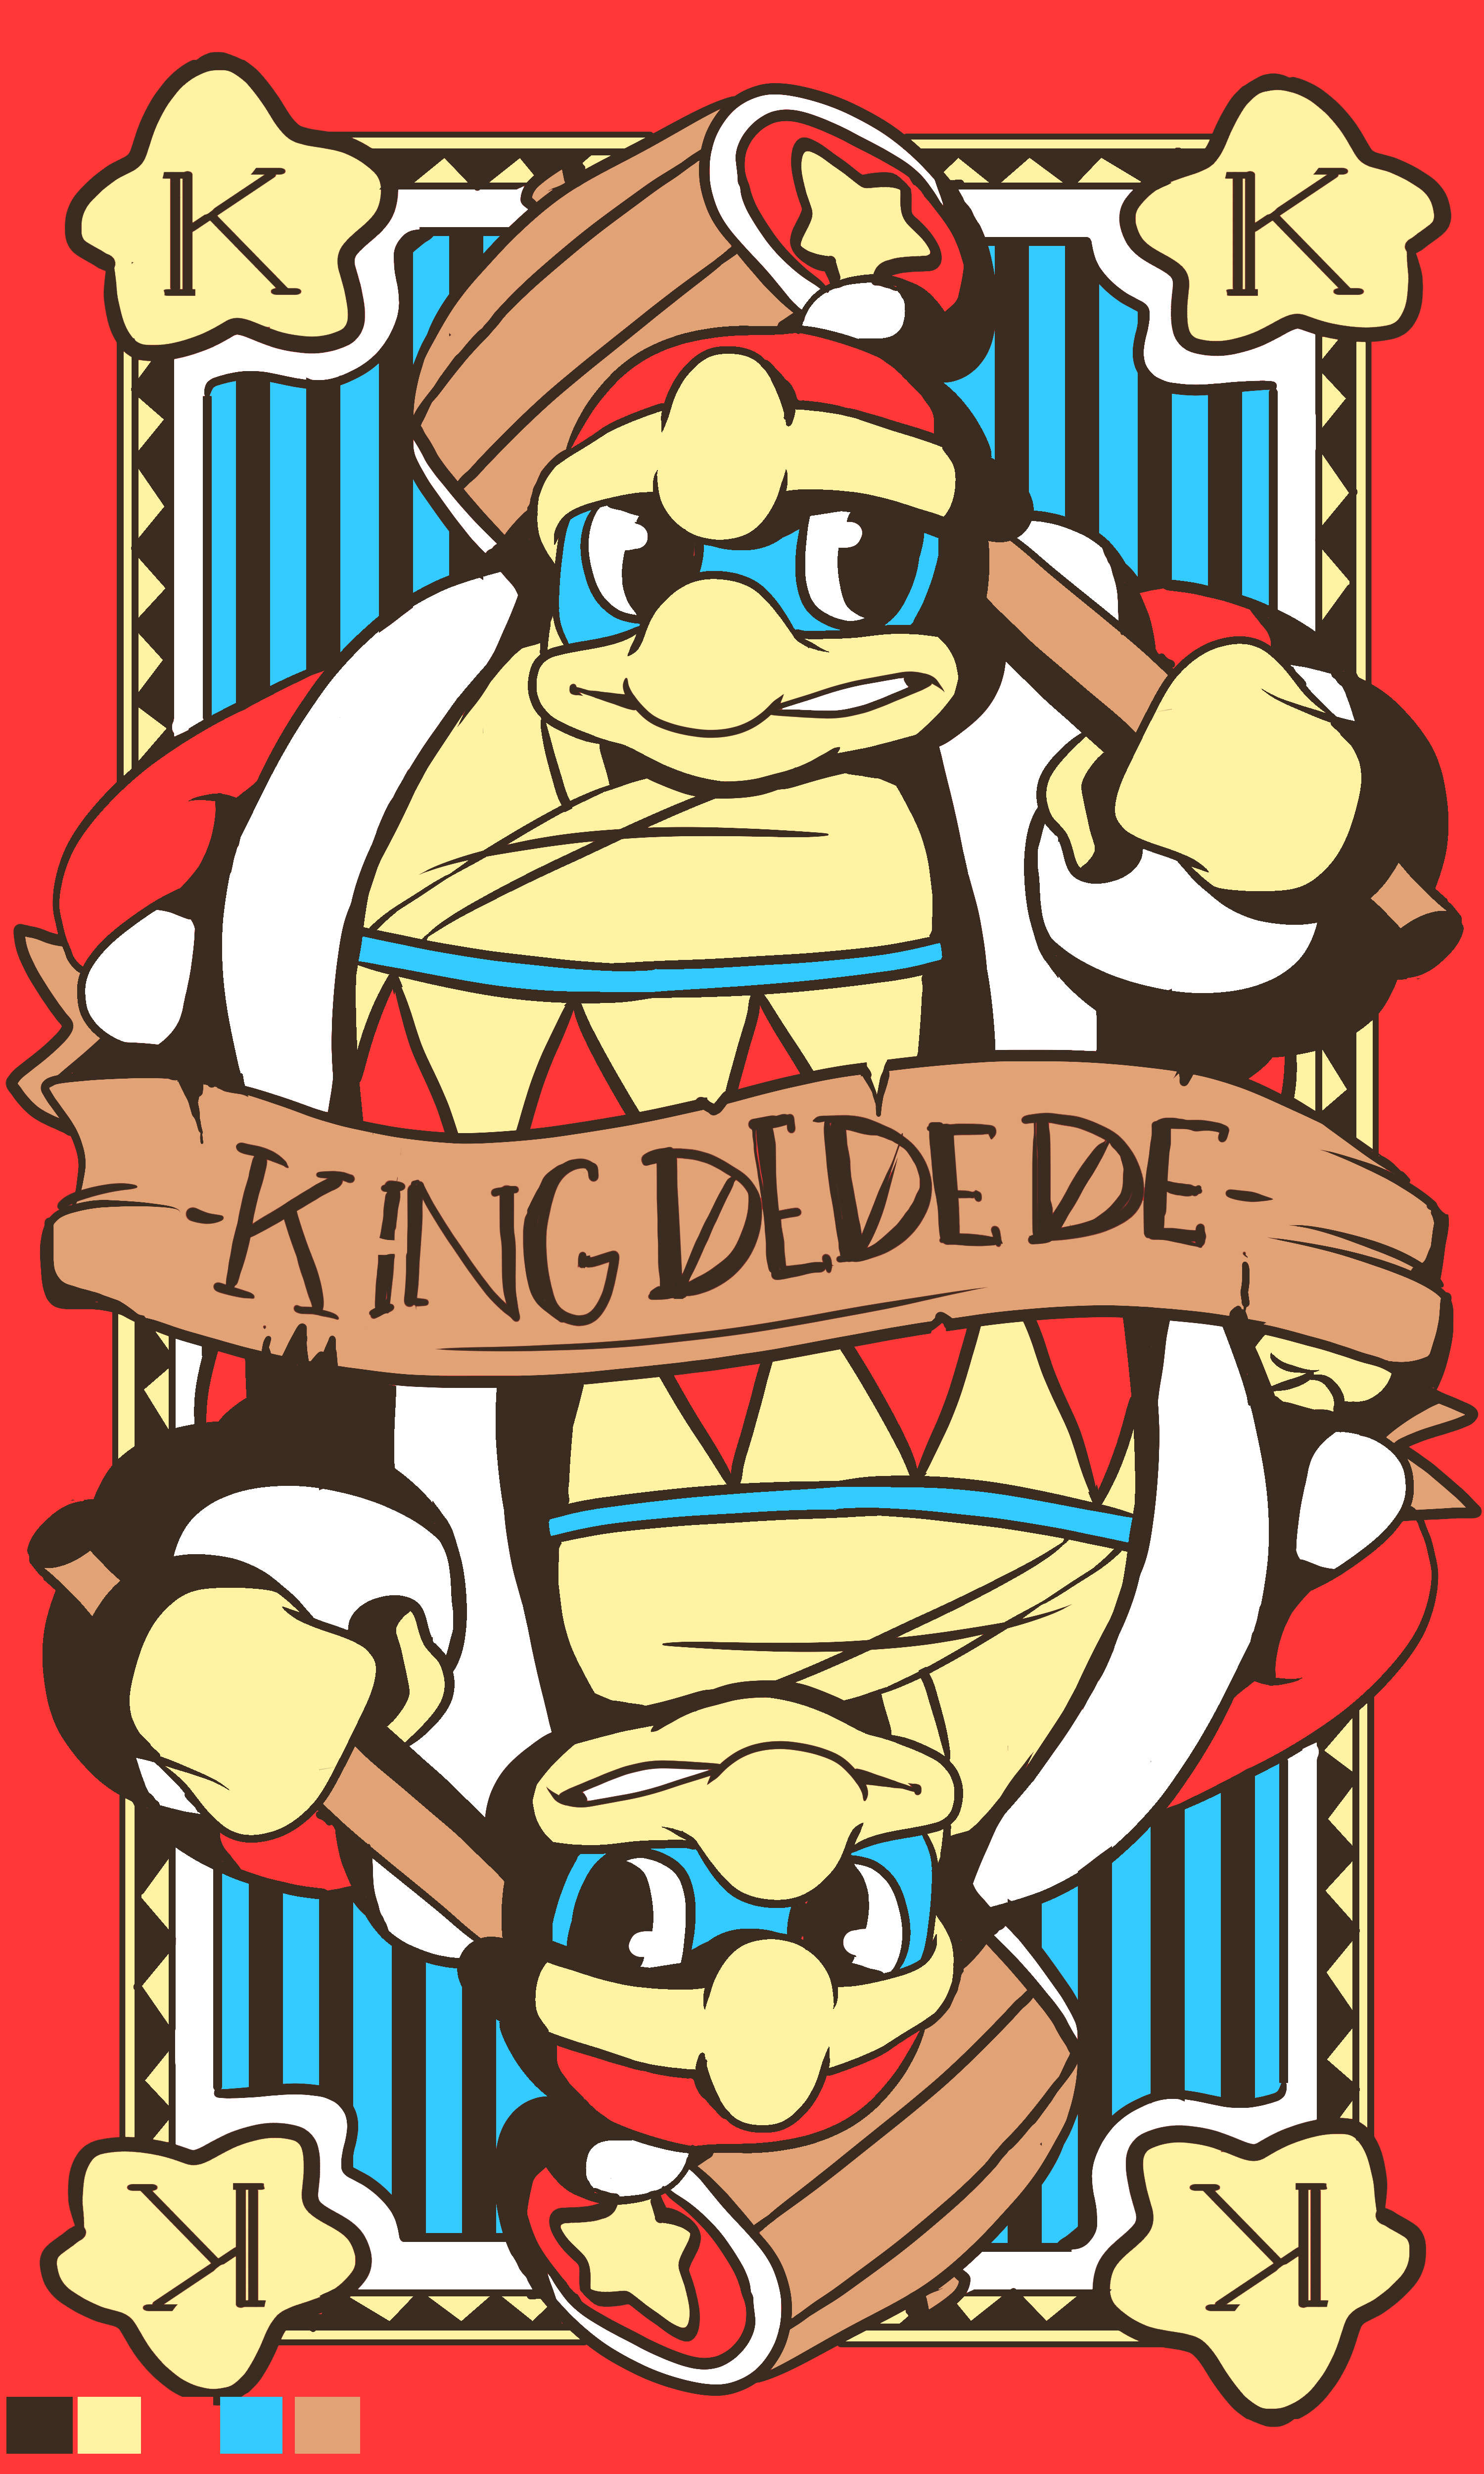 King Dedede T-shrit